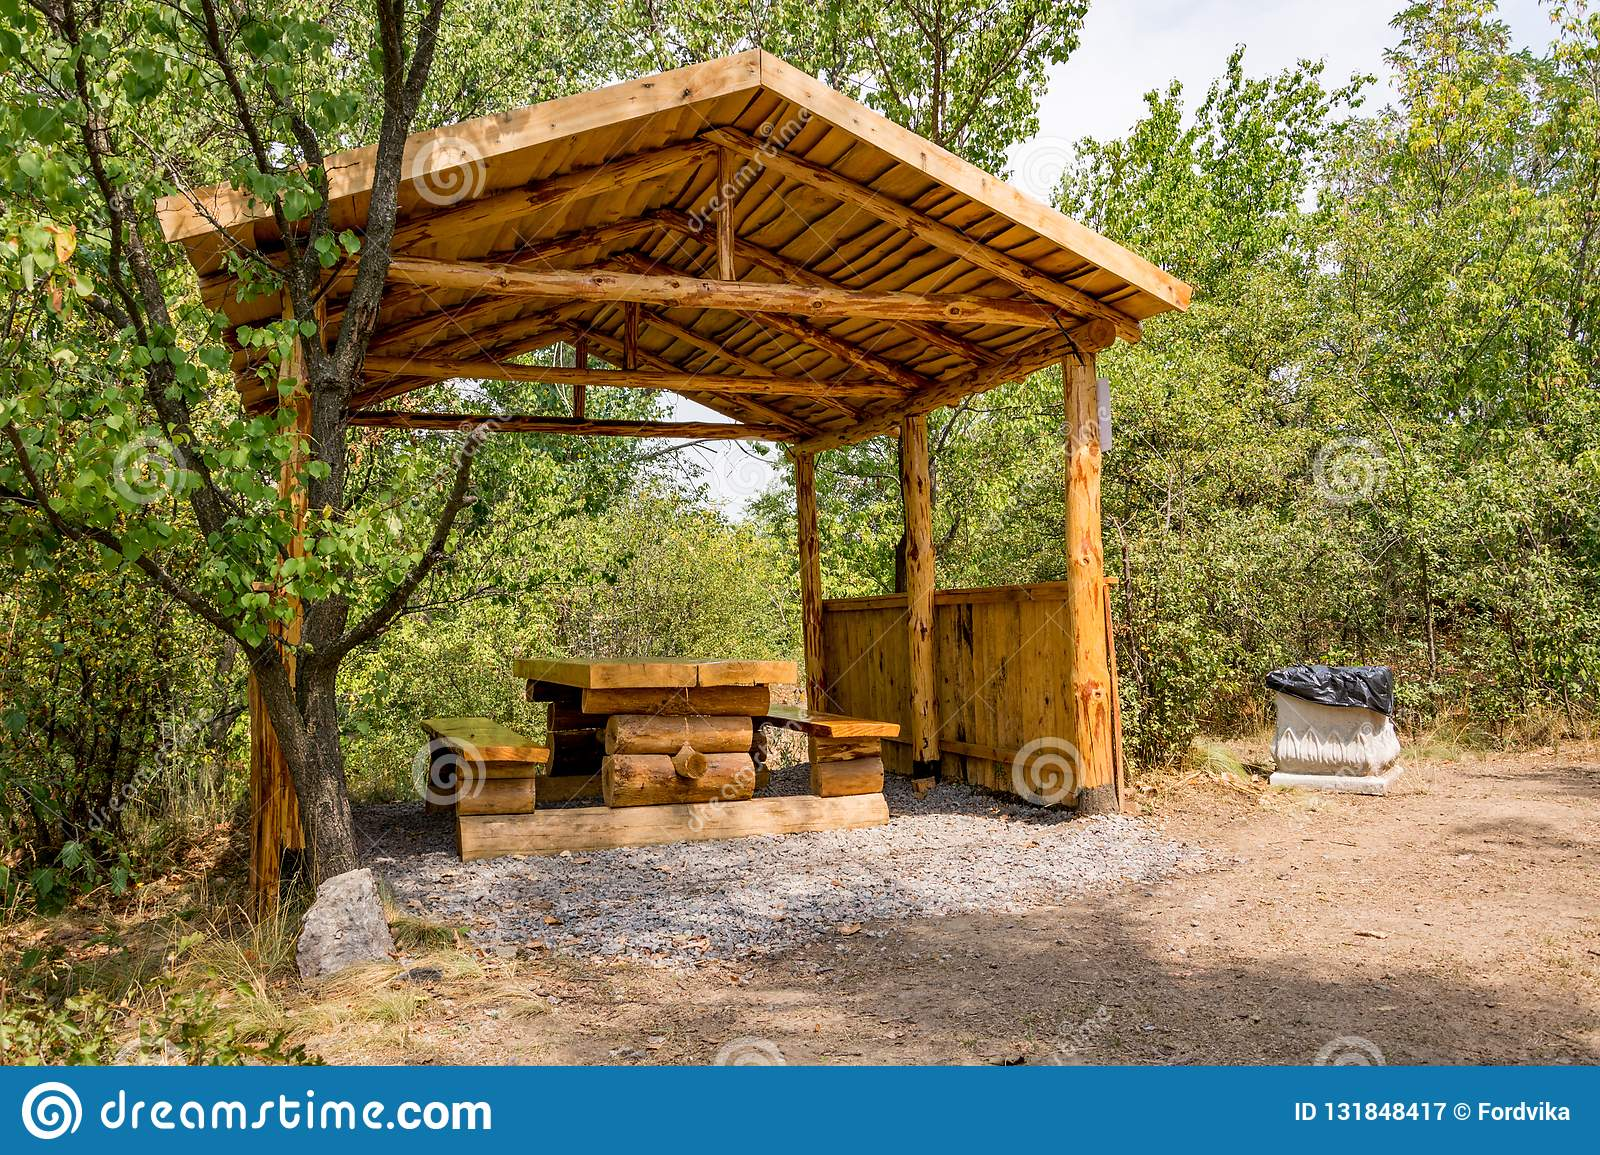 Groovy Wooden Arbor With A Table And Benches For Outdoor Recreation Ibusinesslaw Wood Chair Design Ideas Ibusinesslaworg